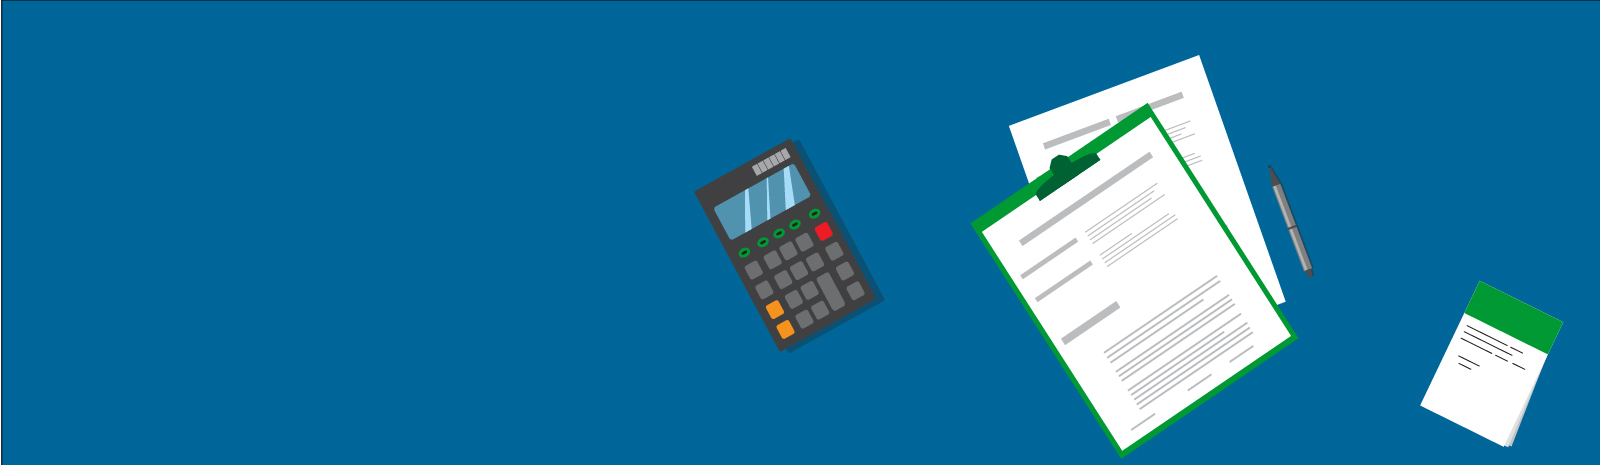 Calculator and forms illustration